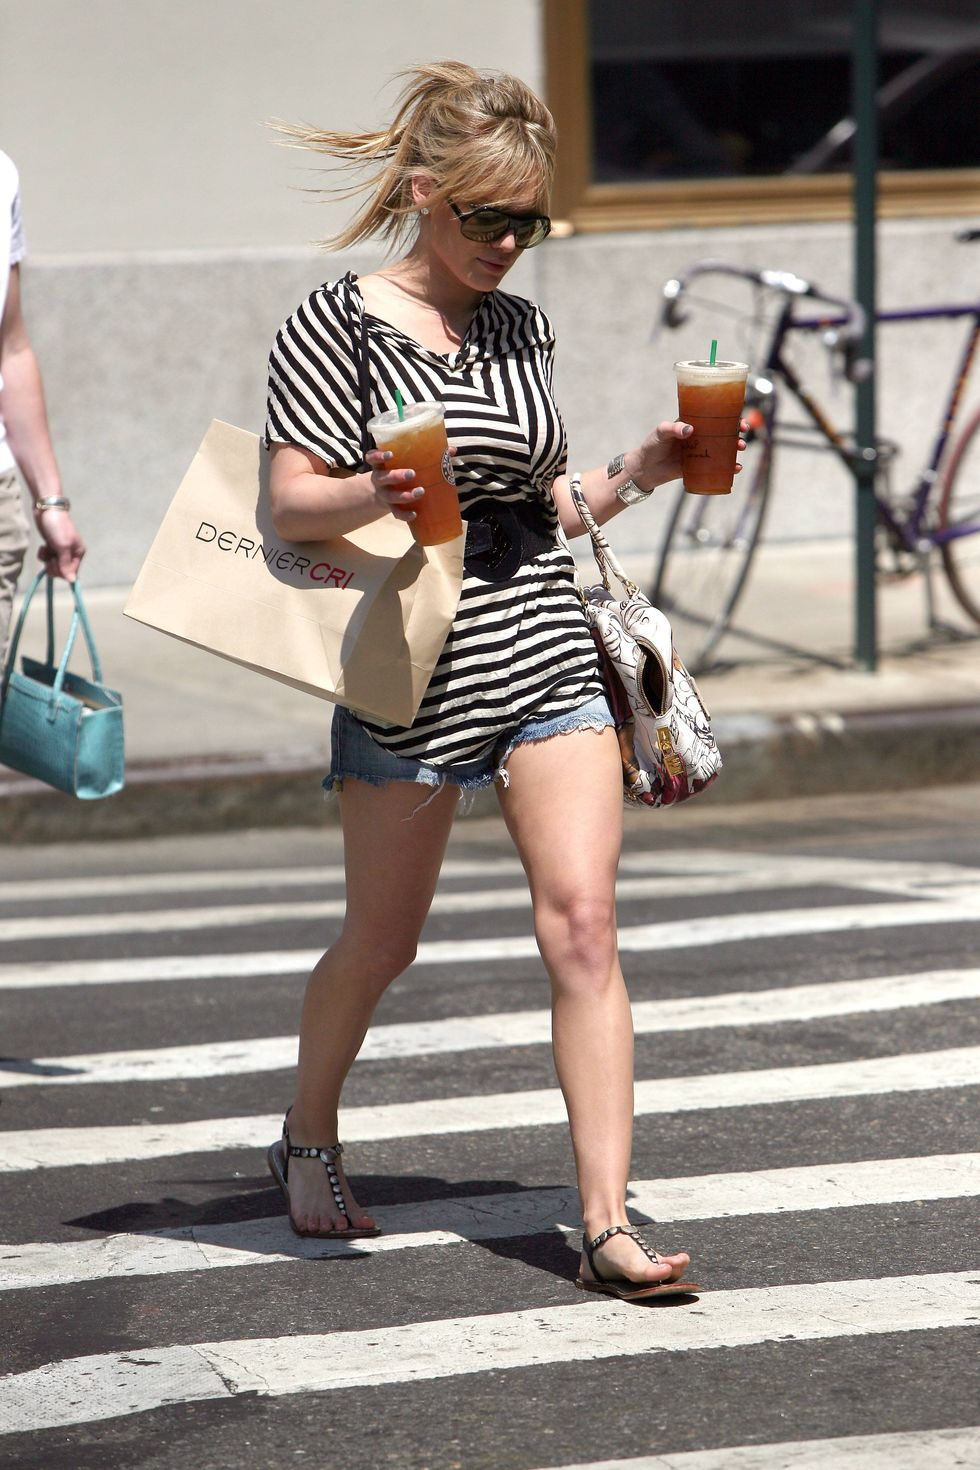 hilary-duff-shopping-at-barneys-in-new-york-city-01